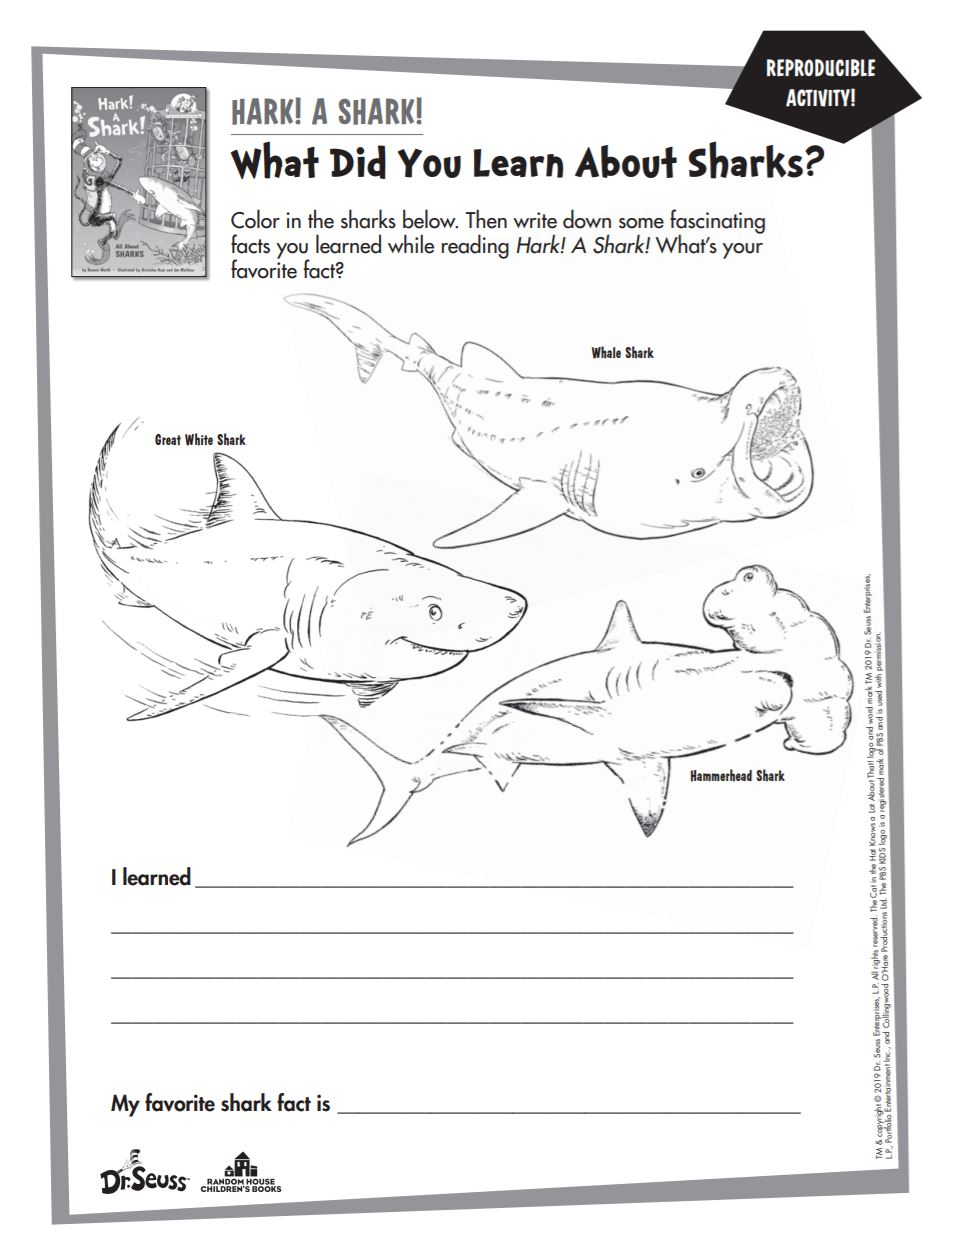 What Did You Learn About Sharks?